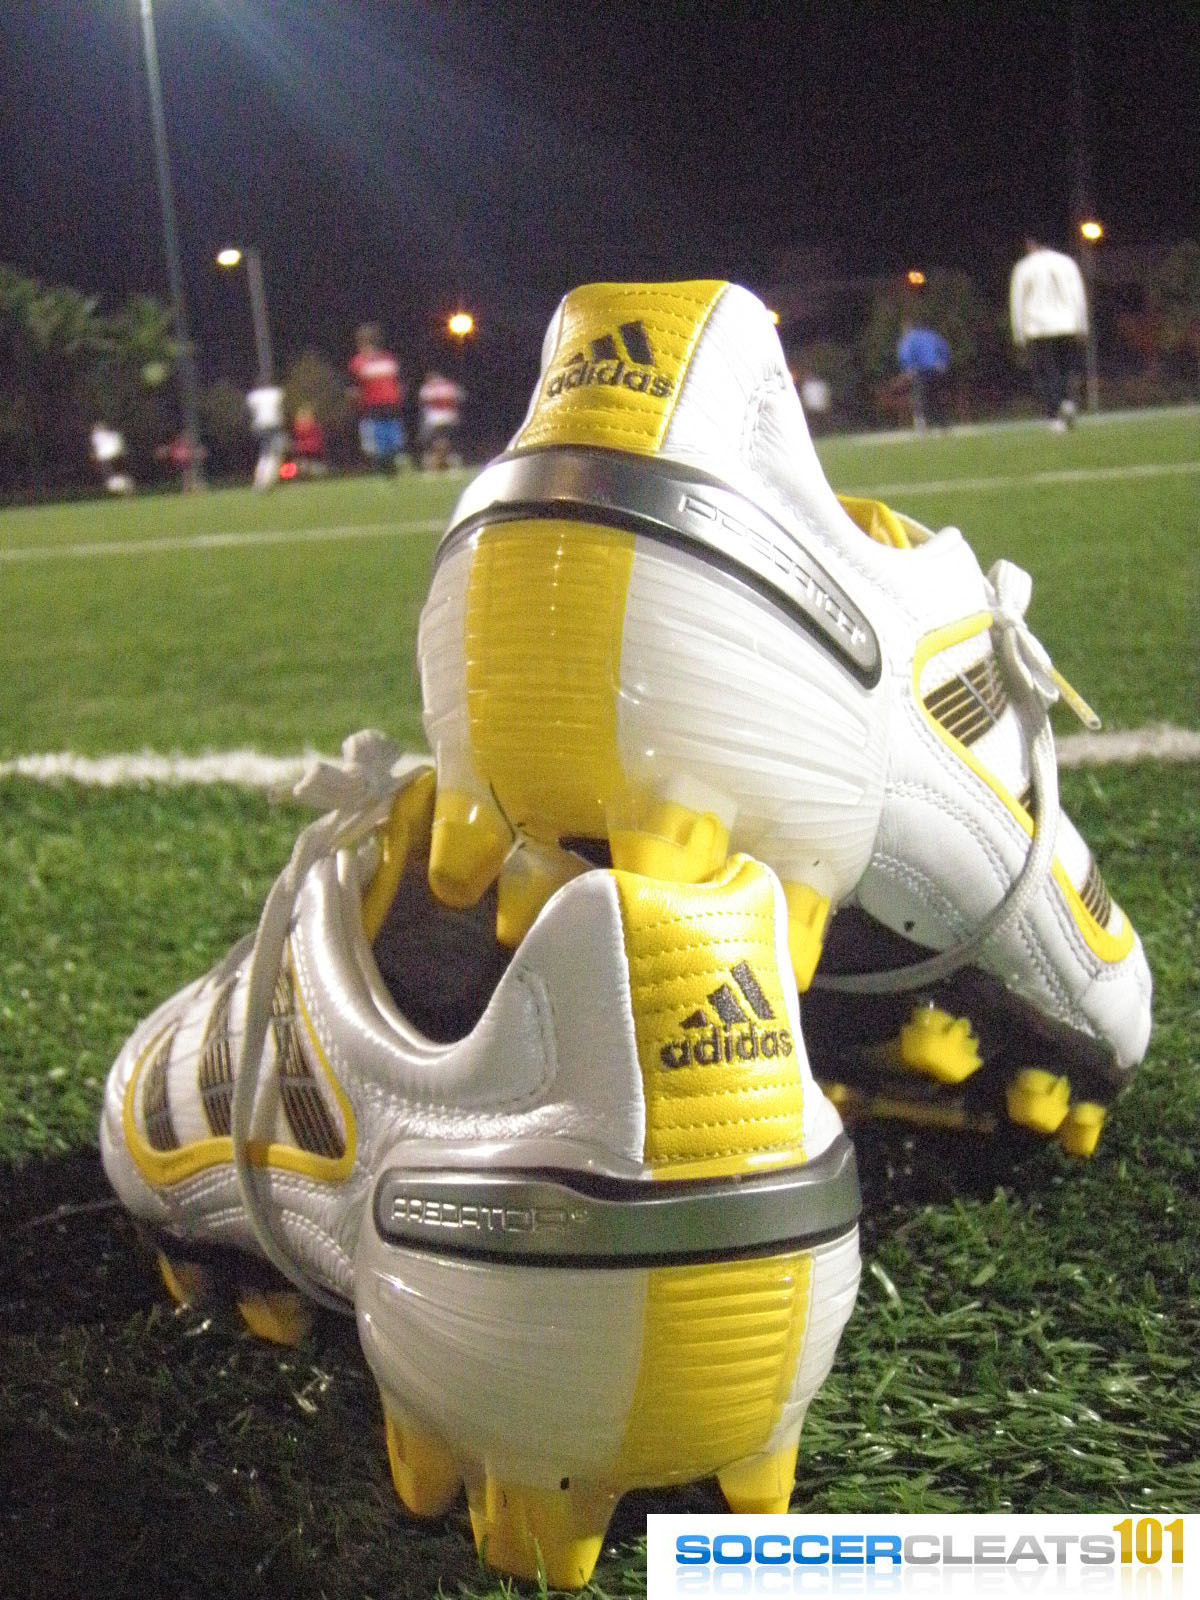 75122f8e8 Problems With the Adidas Predator?   Soccer Cleats 101